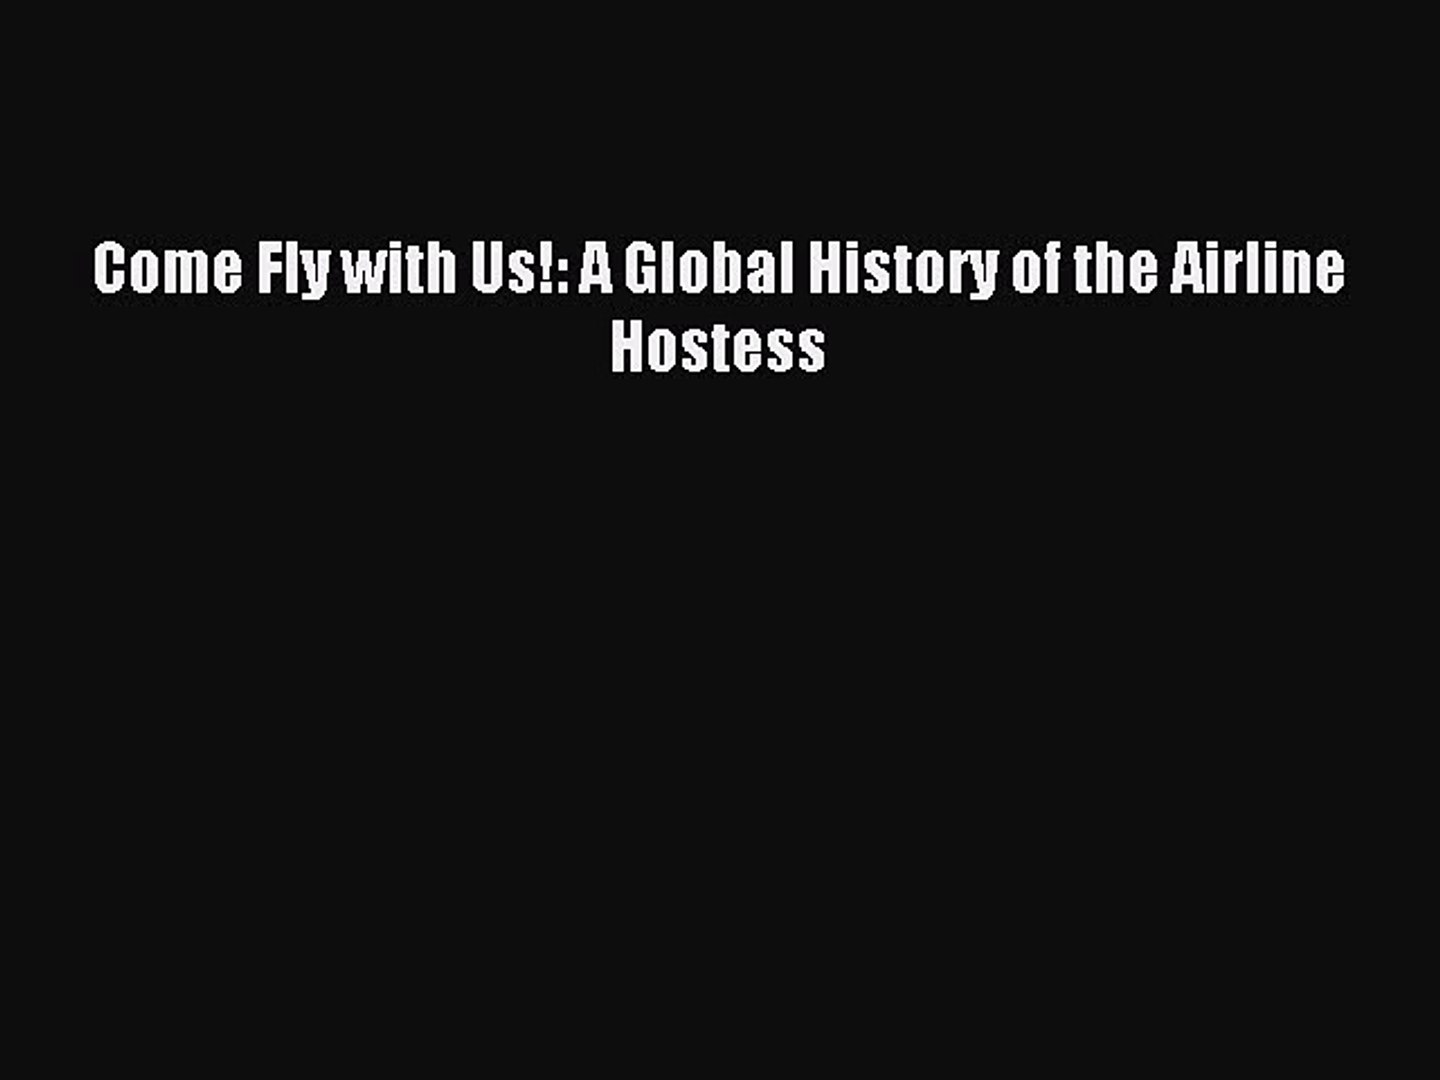 Read Come Fly with Us!: A Global History of the Airline Hostess Ebook Online